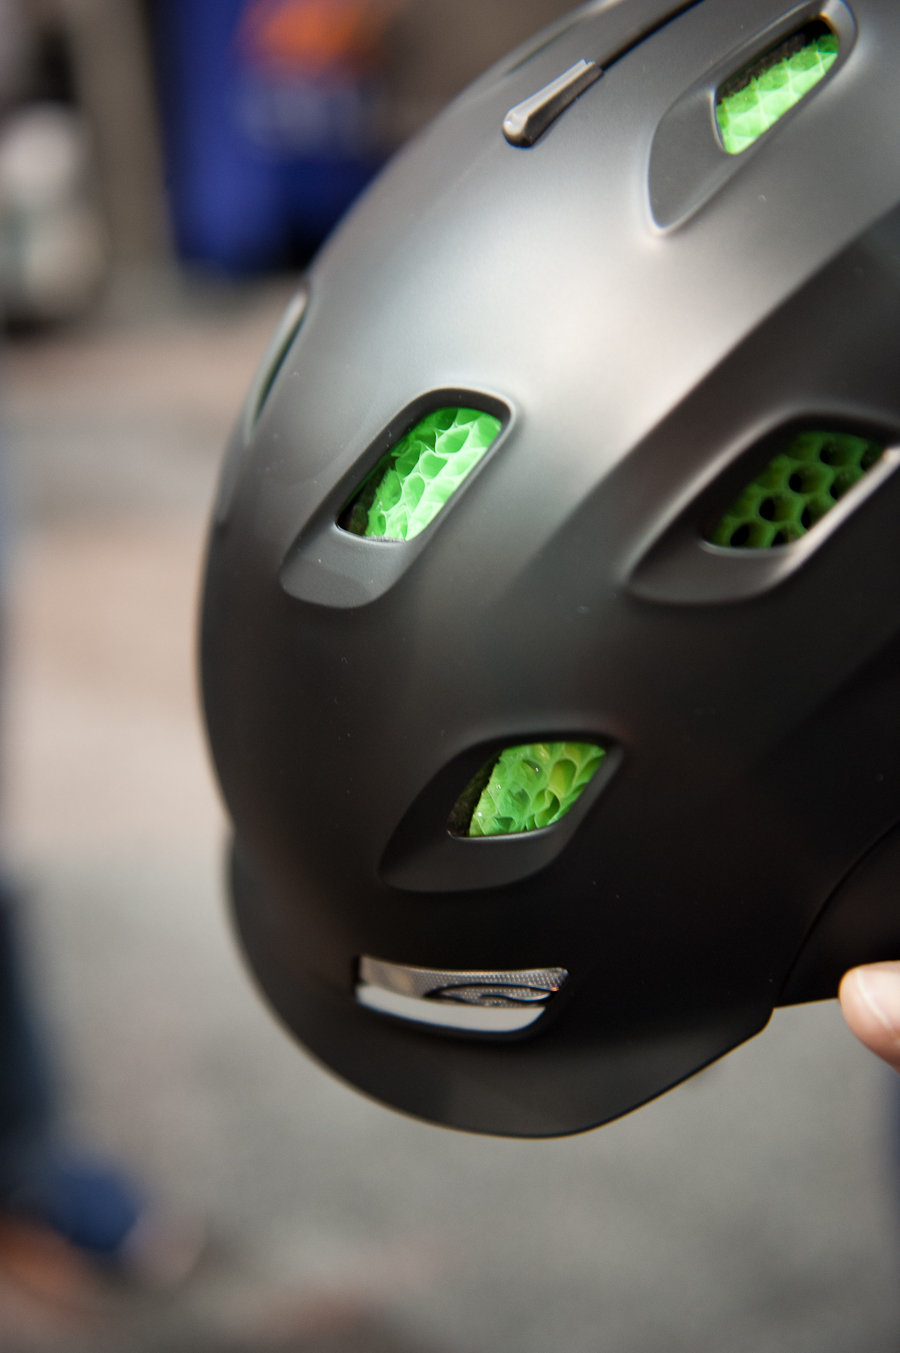 The Smith Vantage Helmet utilizes Aerokore technology with Koroyd for increased airflow and protection. The helmet has under the helmet goggle fitting as well as vent compatibility.